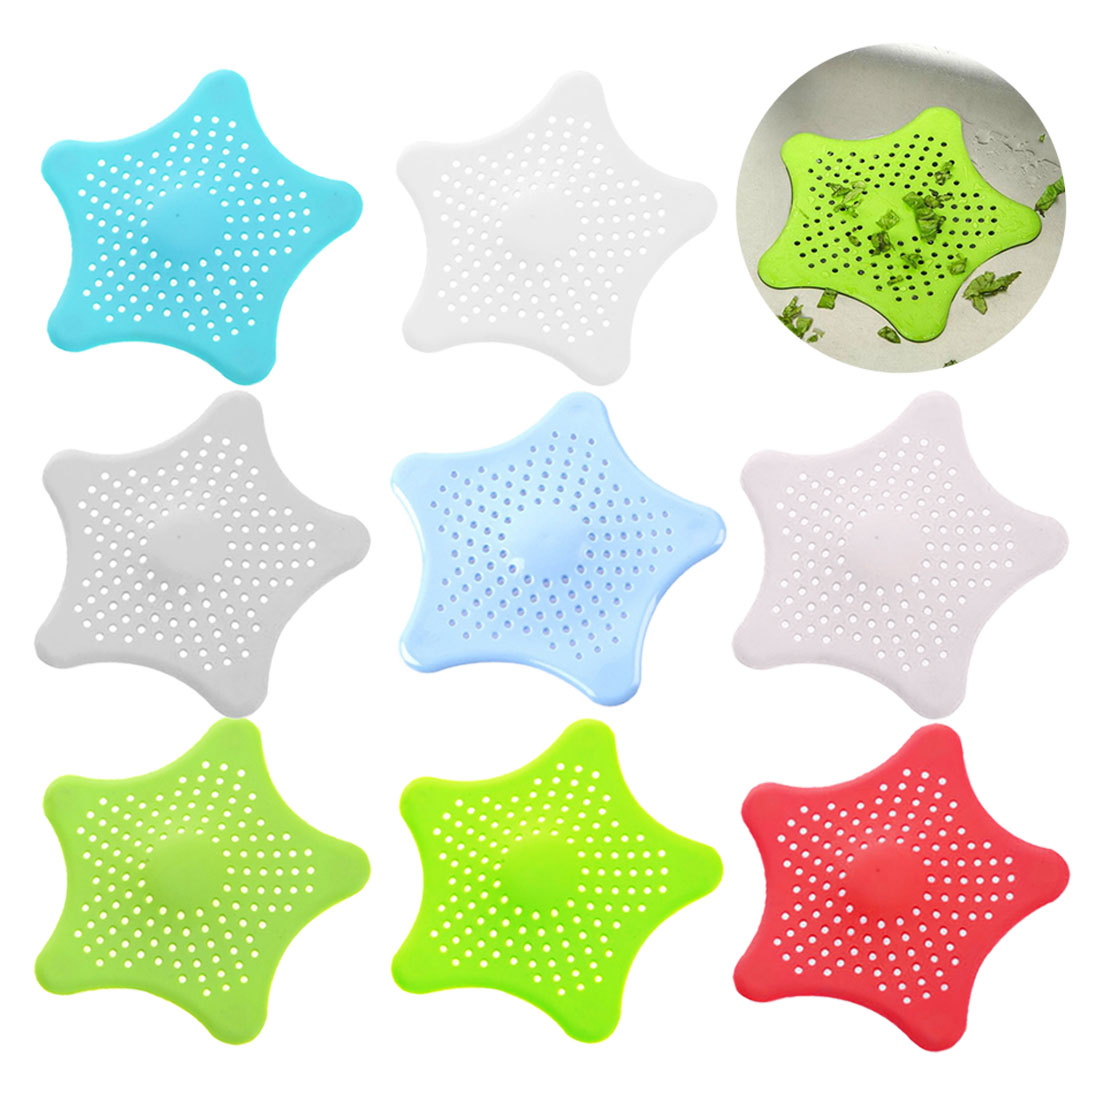 2019 New  Bathroom Kitchen Sink Strainer Star Bathroom Drain Hair Catcher Bath Stopper Plug Sink Strainer Filter Shower